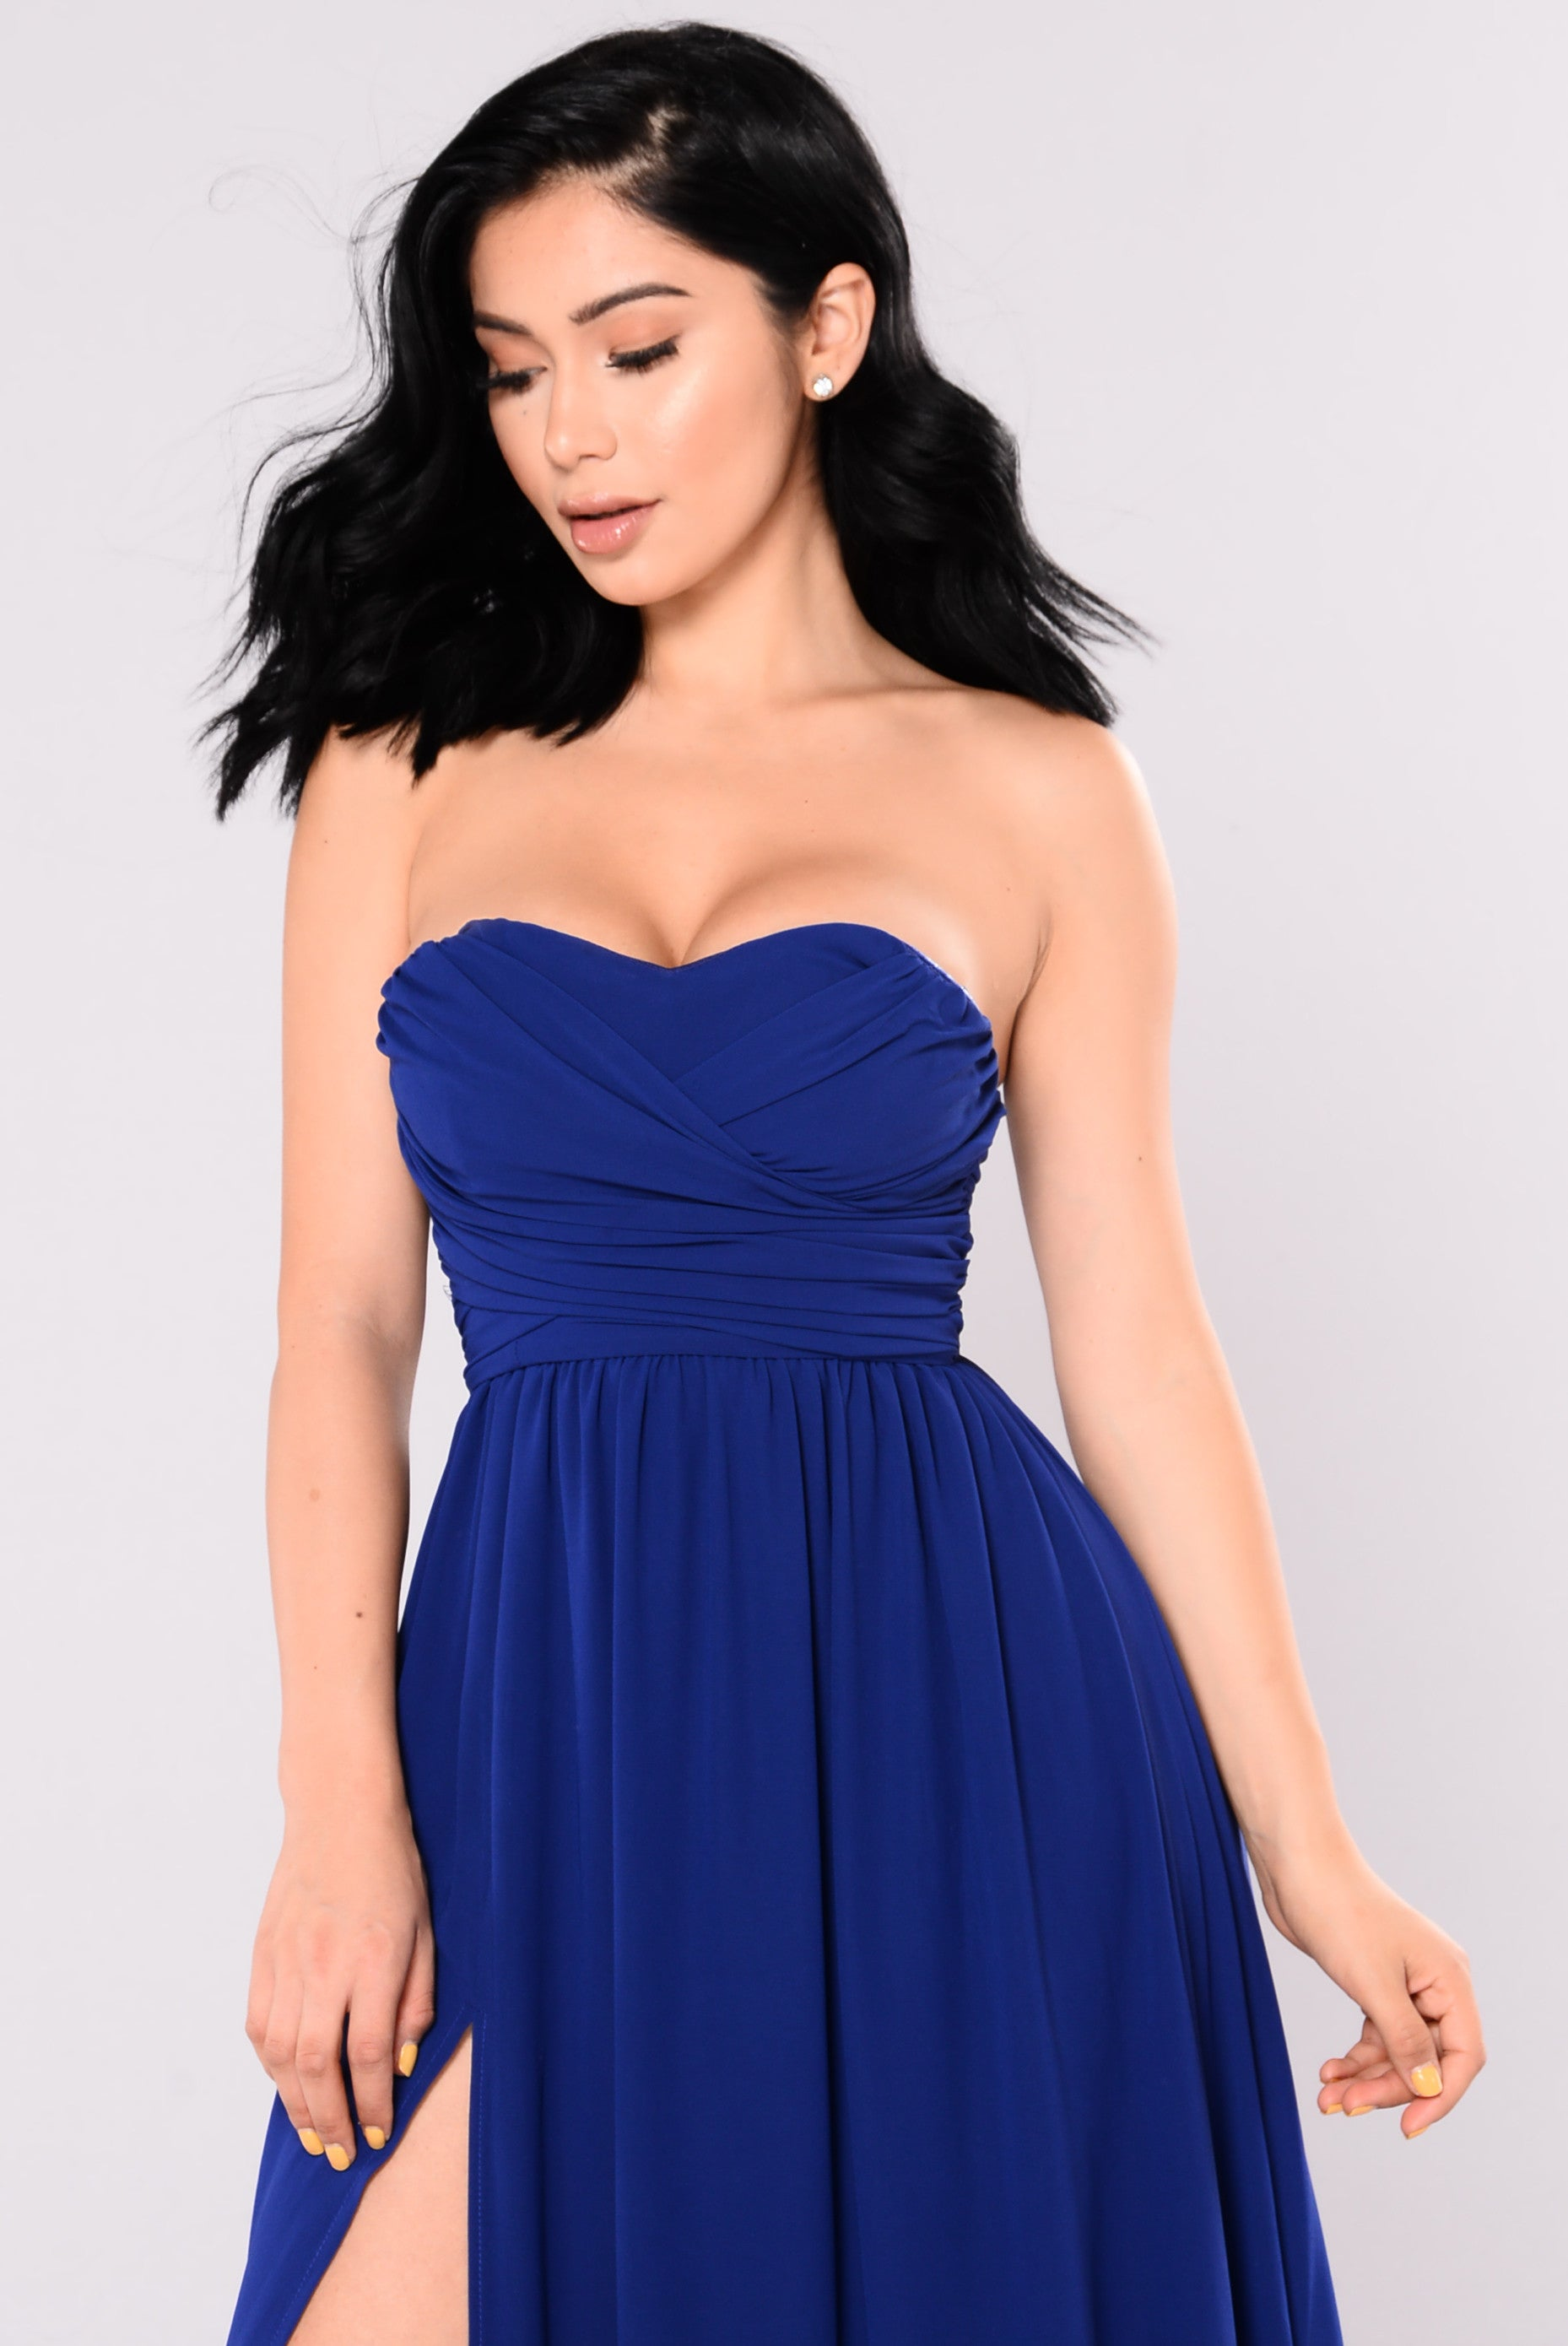 A Night In Florence Maxi Dress - Royal 28042e9d2